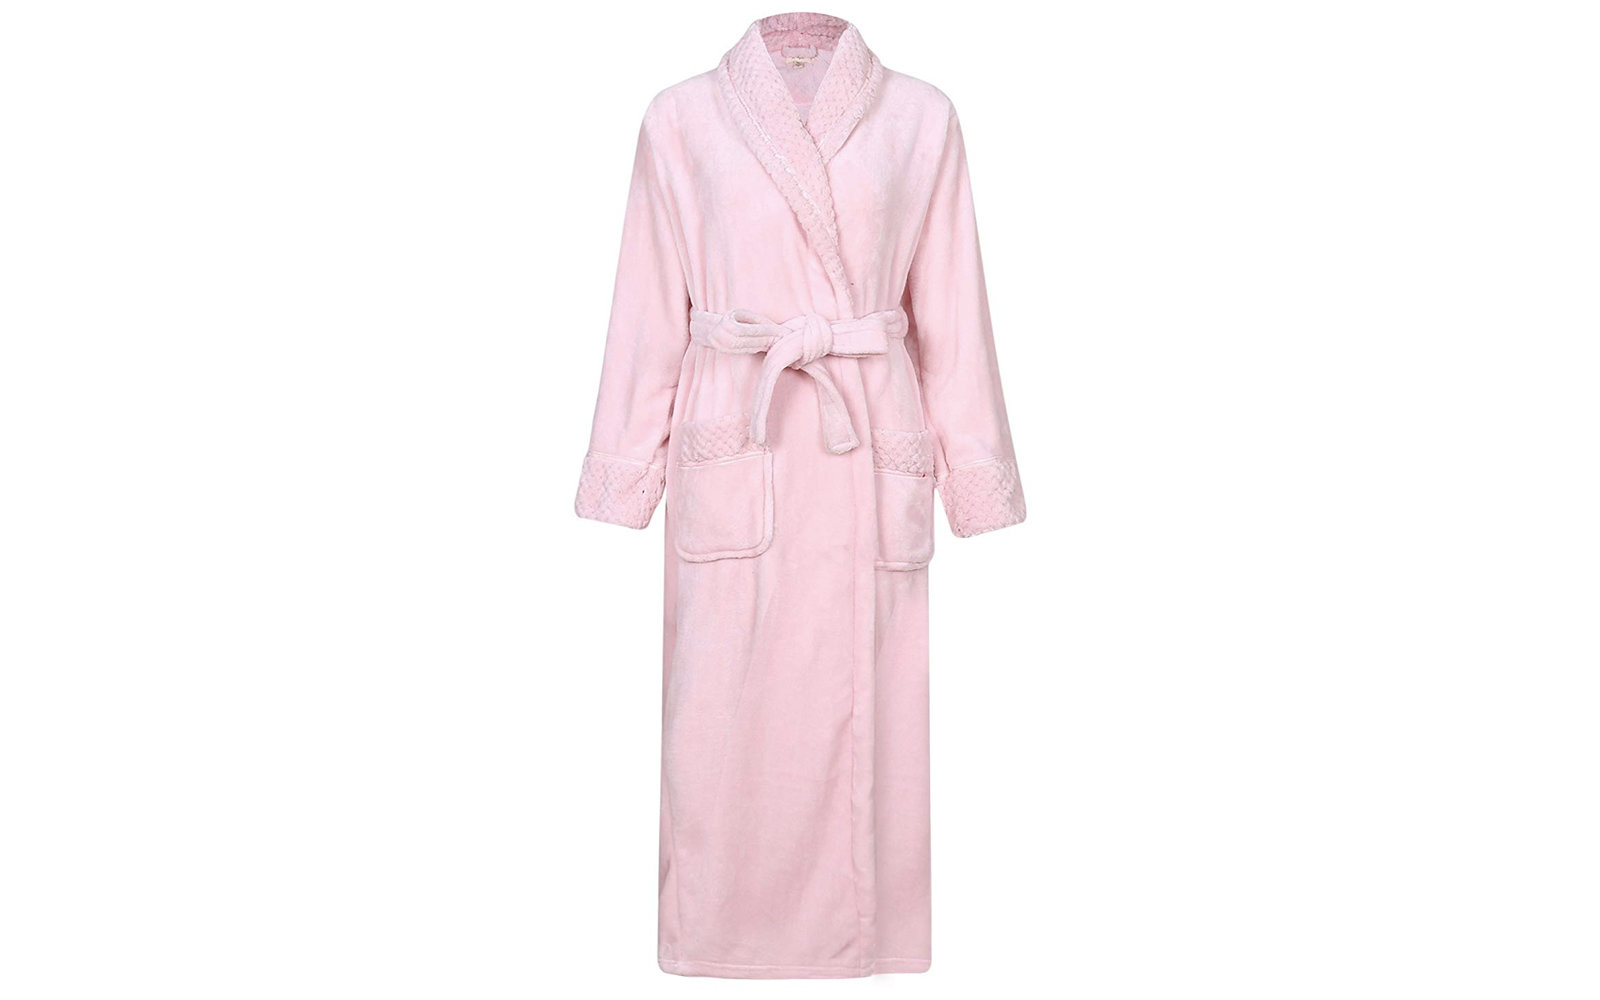 Amazon Most Wished For Fleece Robe